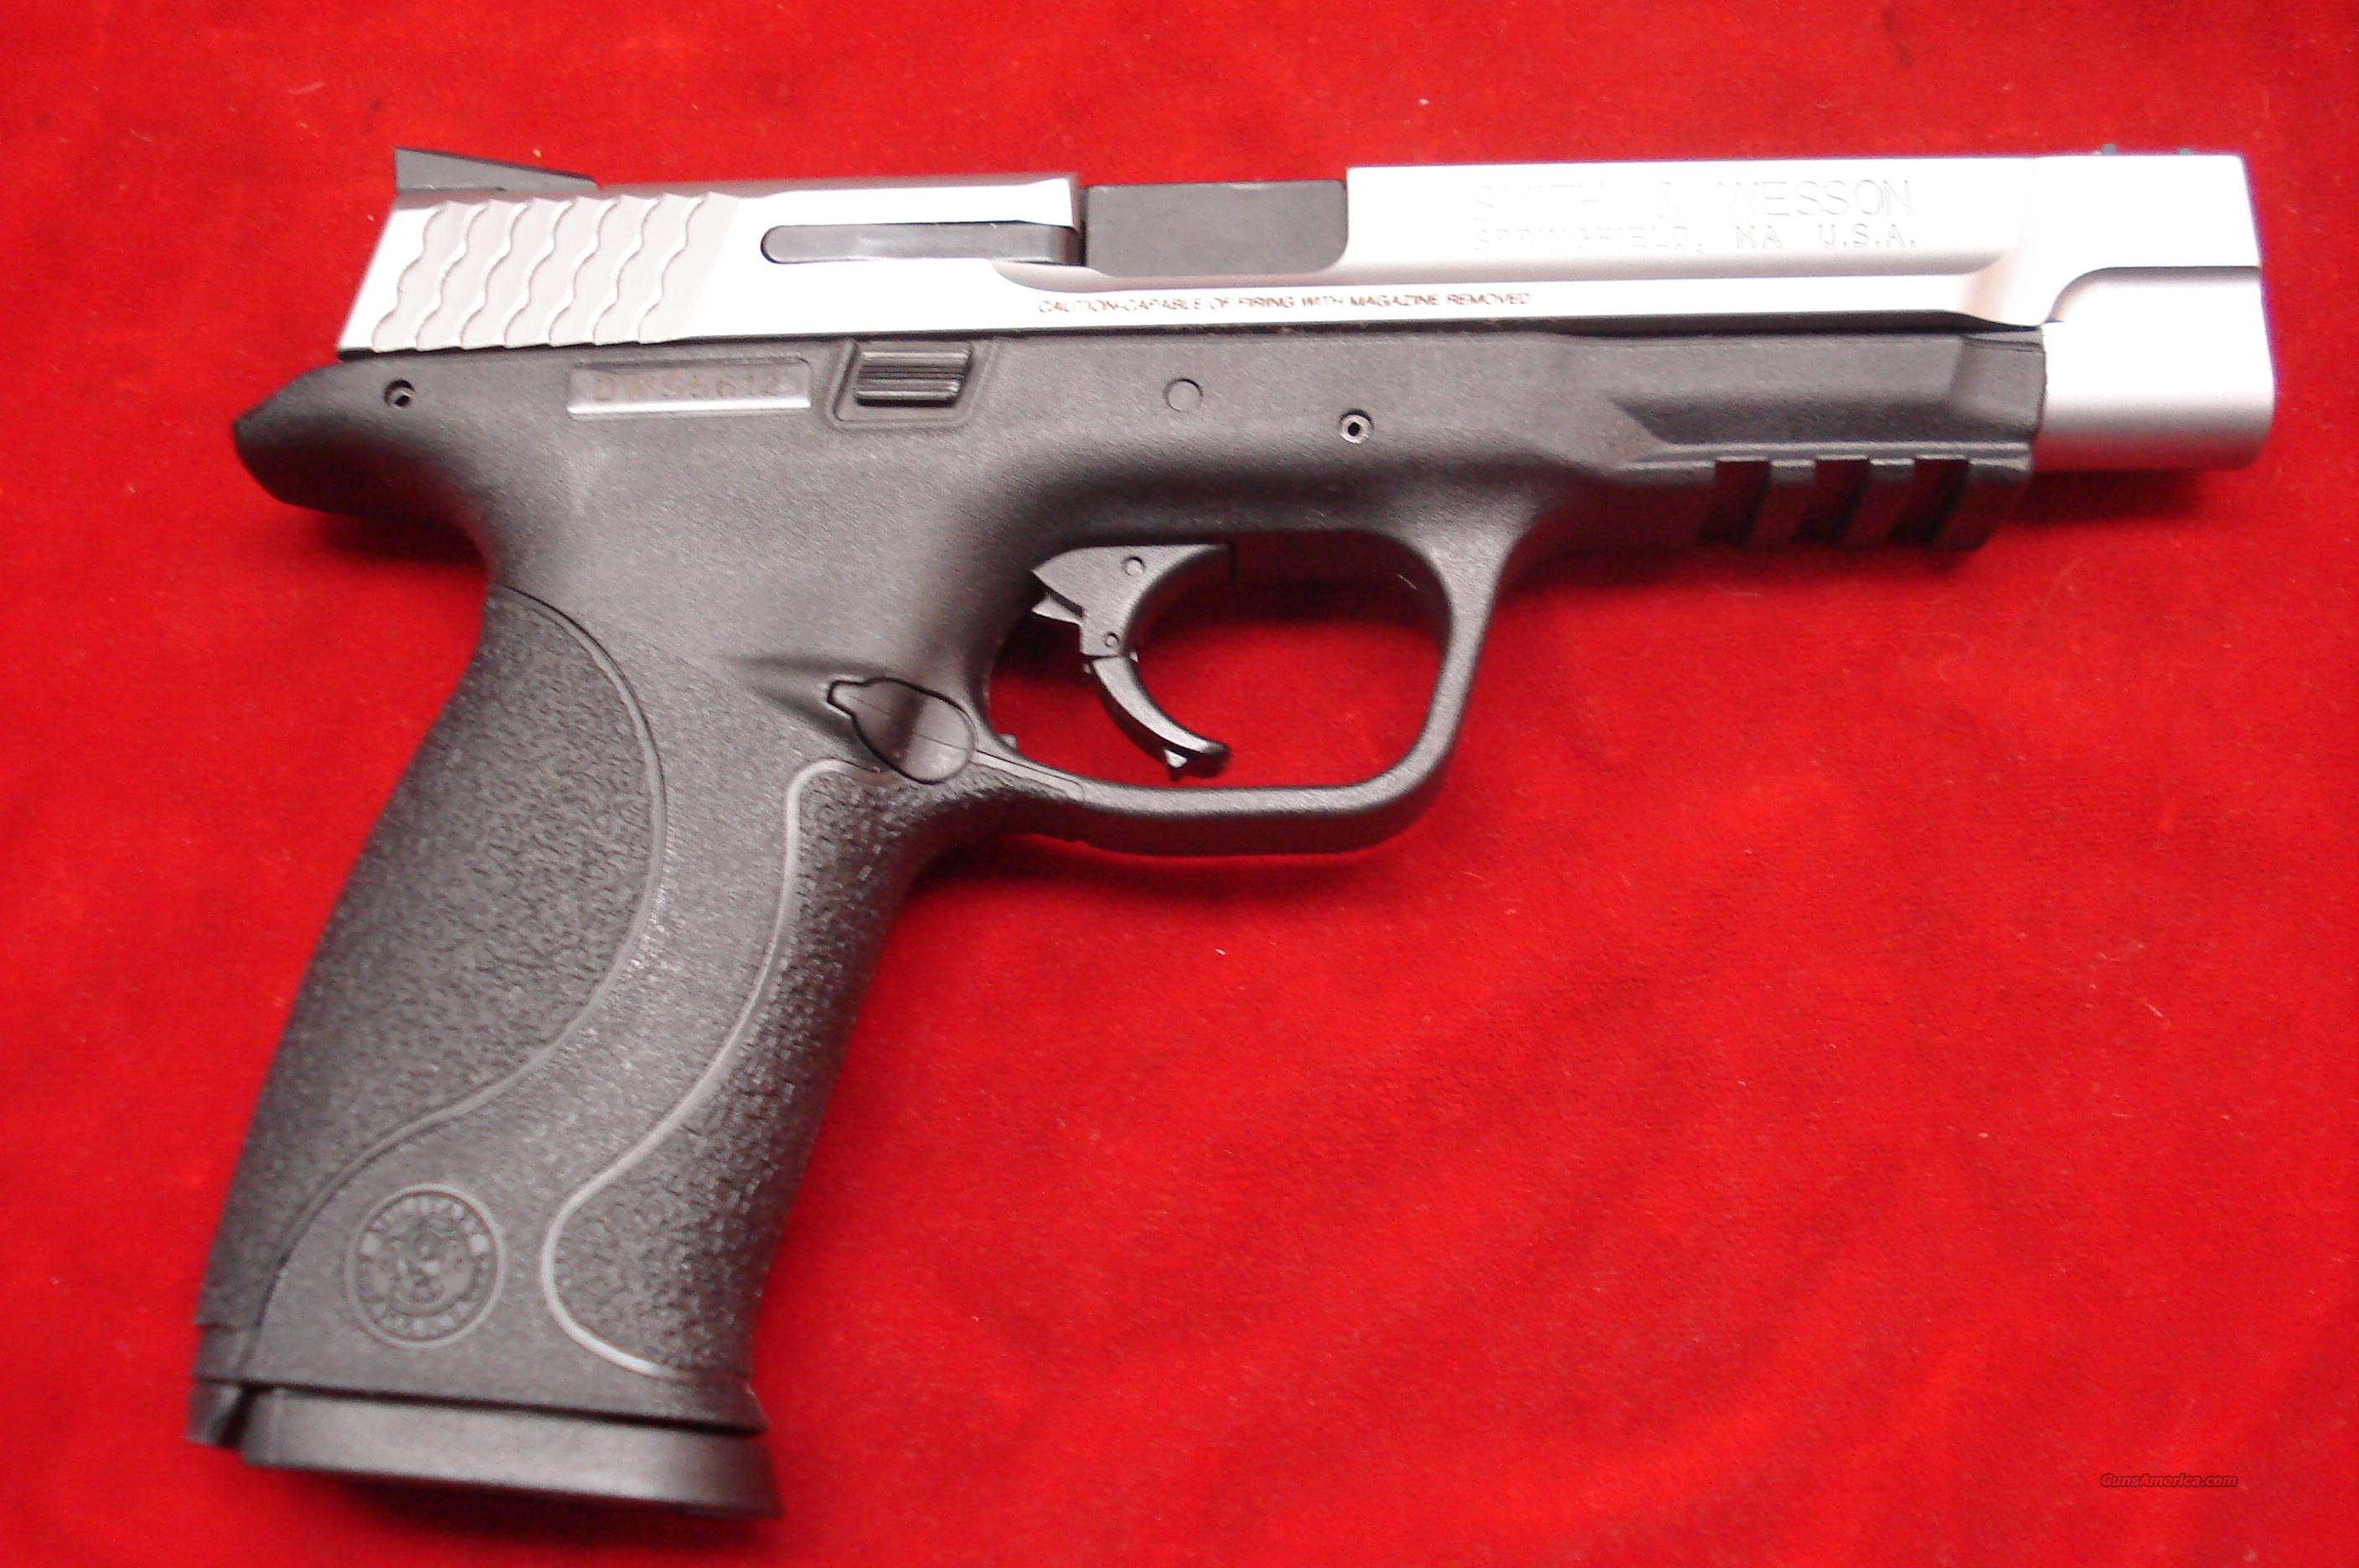 SMITH AND WESSON M&P PRO SERIES 9MM STAINLESS HIGH CAPACITY  NEW   Guns > Pistols > Smith & Wesson Pistols - Autos > Polymer Frame